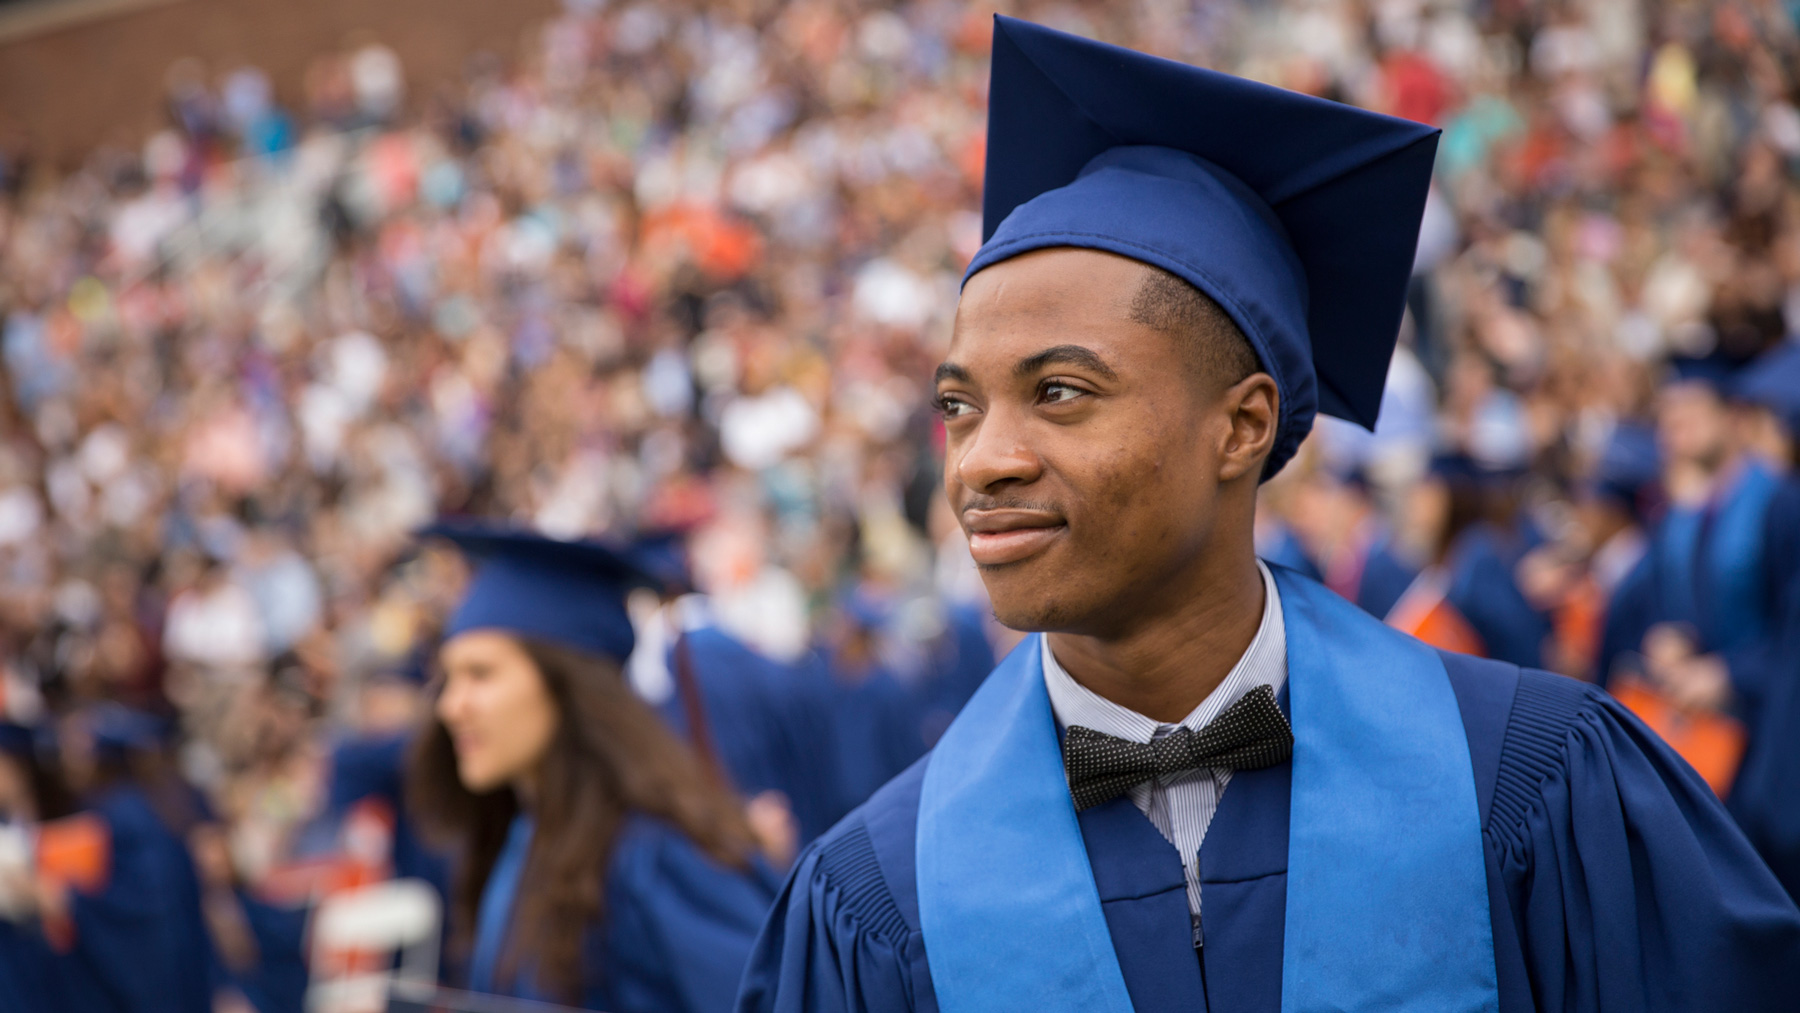 smiling, bow-tied graduate at commencement